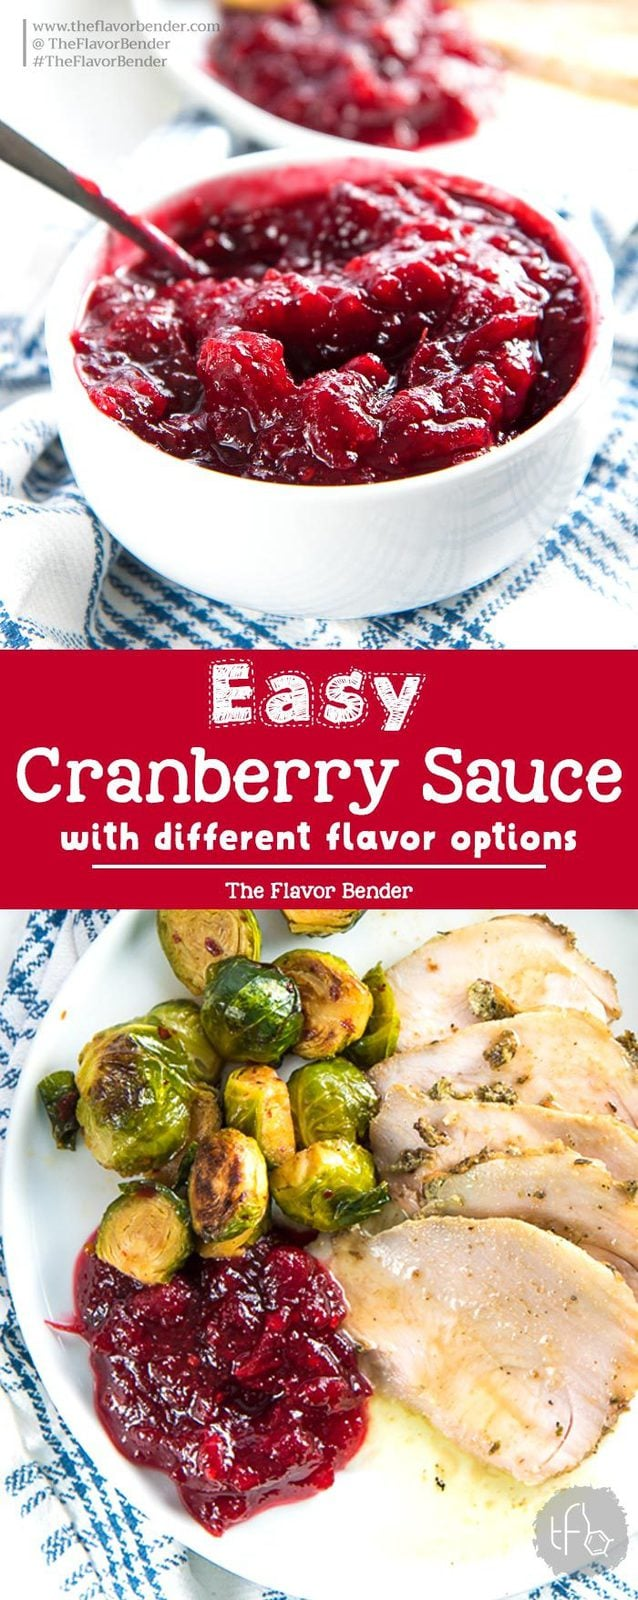 Homemade Easy Cranberry Sauce - An easy and versatile recipe to make amazing cranberry sauce for Thanksgiving! Plus, leftovers can be used in so many ways too.